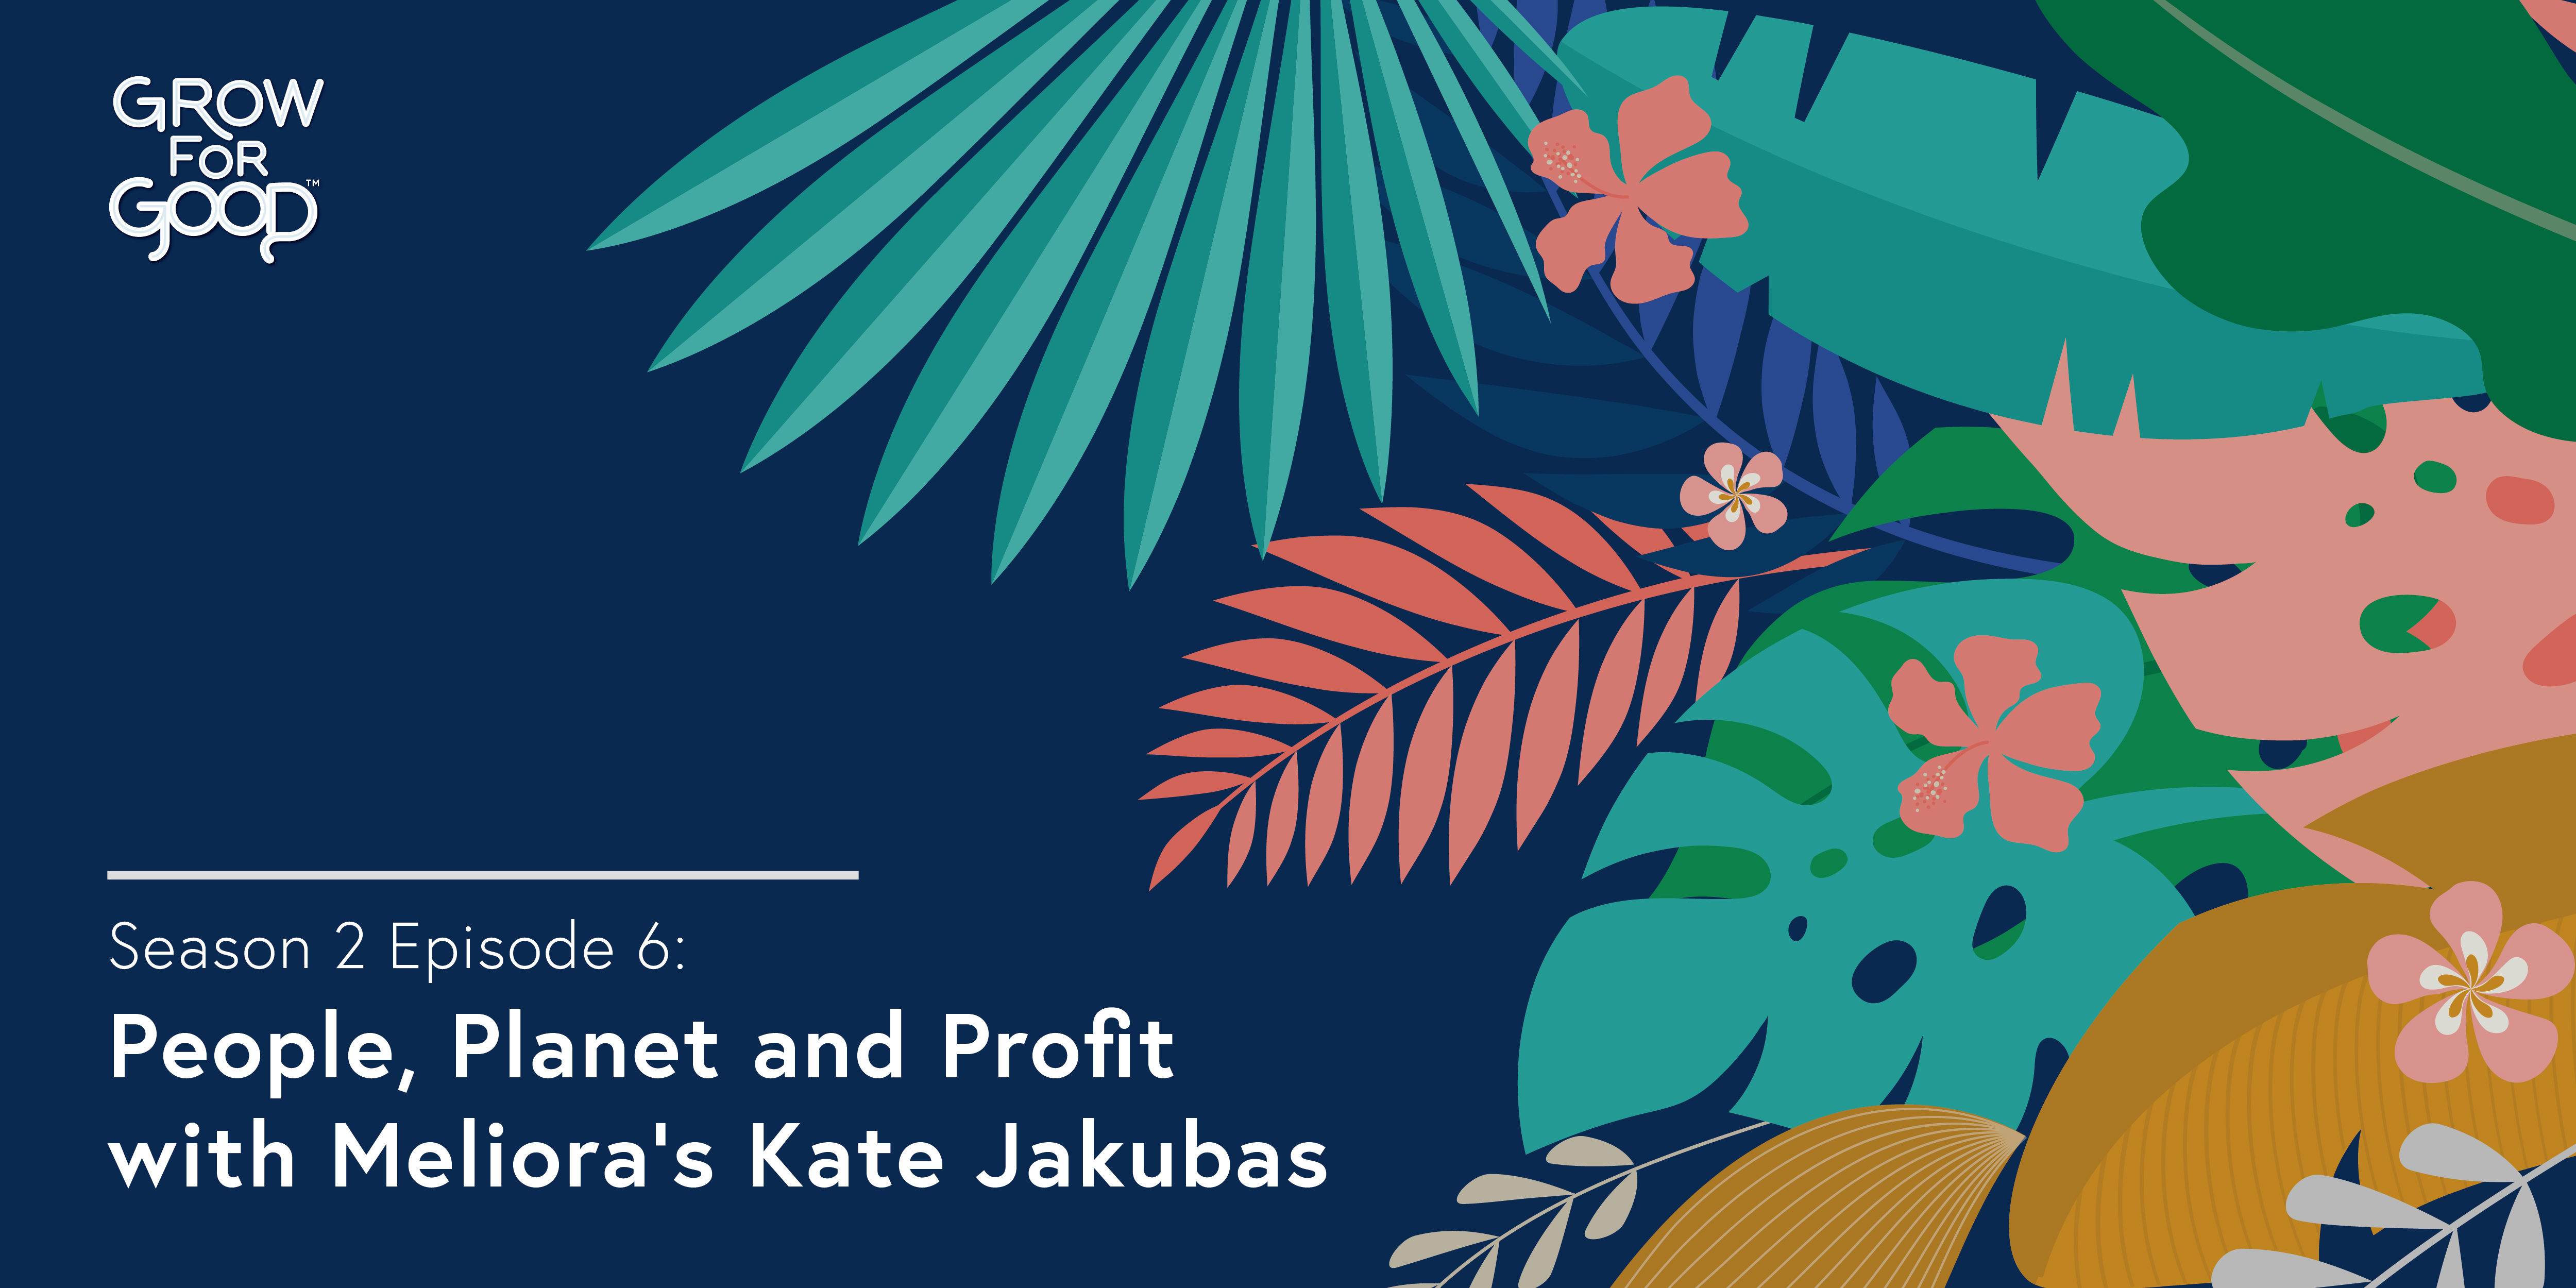 Grow For Good Podcast art- White text that says Season 2 Episode 6 People, Planet and Profit with Meliora's Kate Jakubas on a dark purple background with tropical flowers